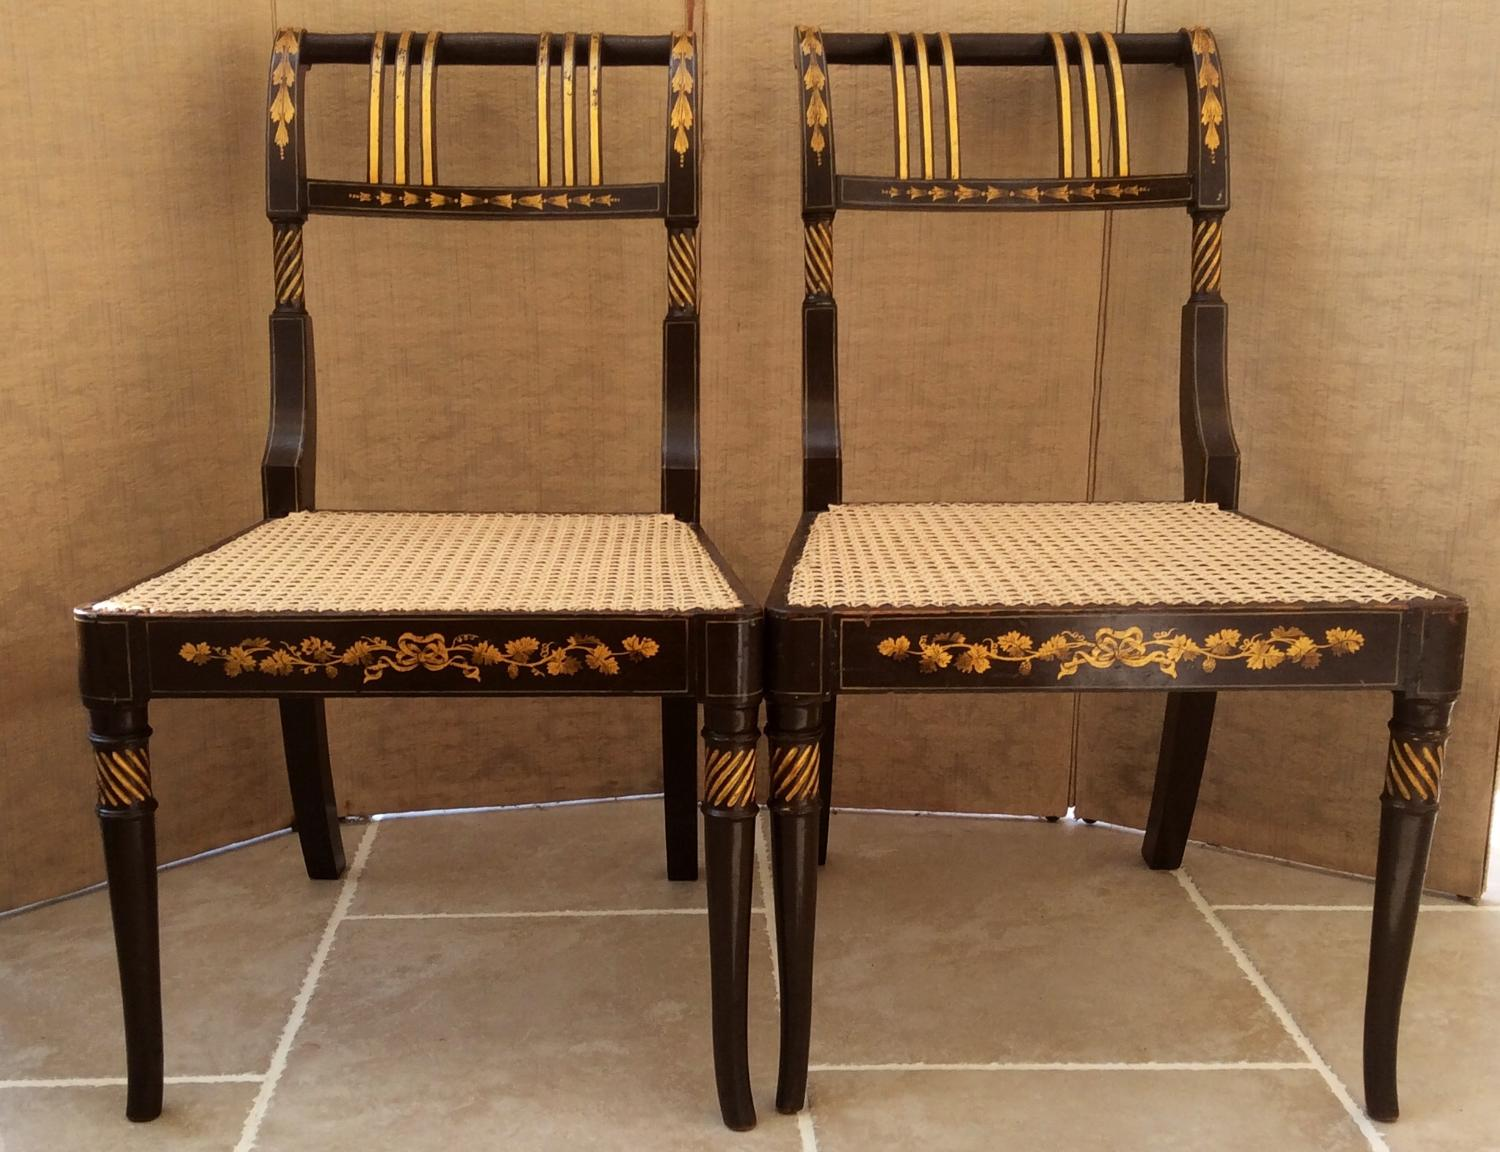 Pair of Regency Period painted side chairs